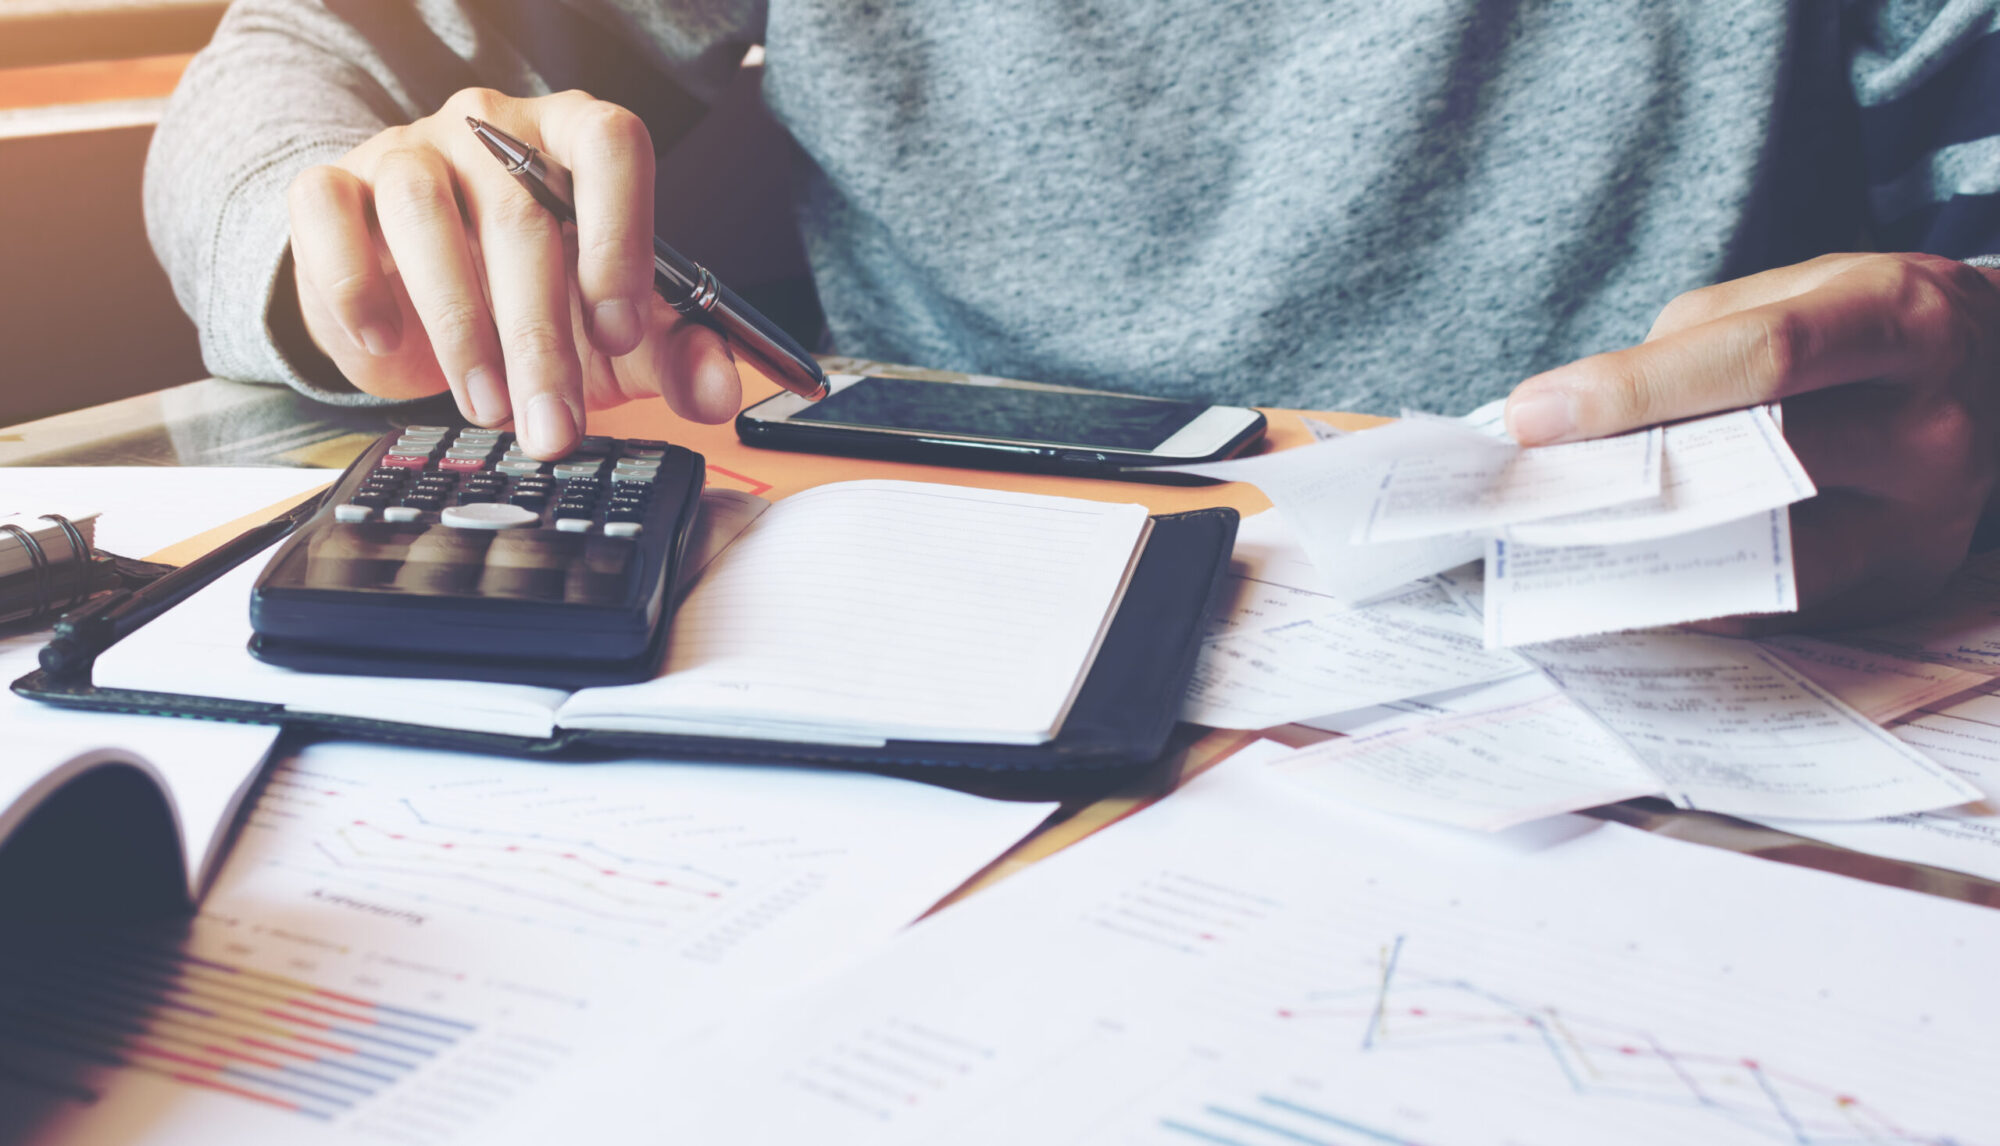 Should You Invest or Pay Down Debt? Make the Most of Your Hard-Earned Money